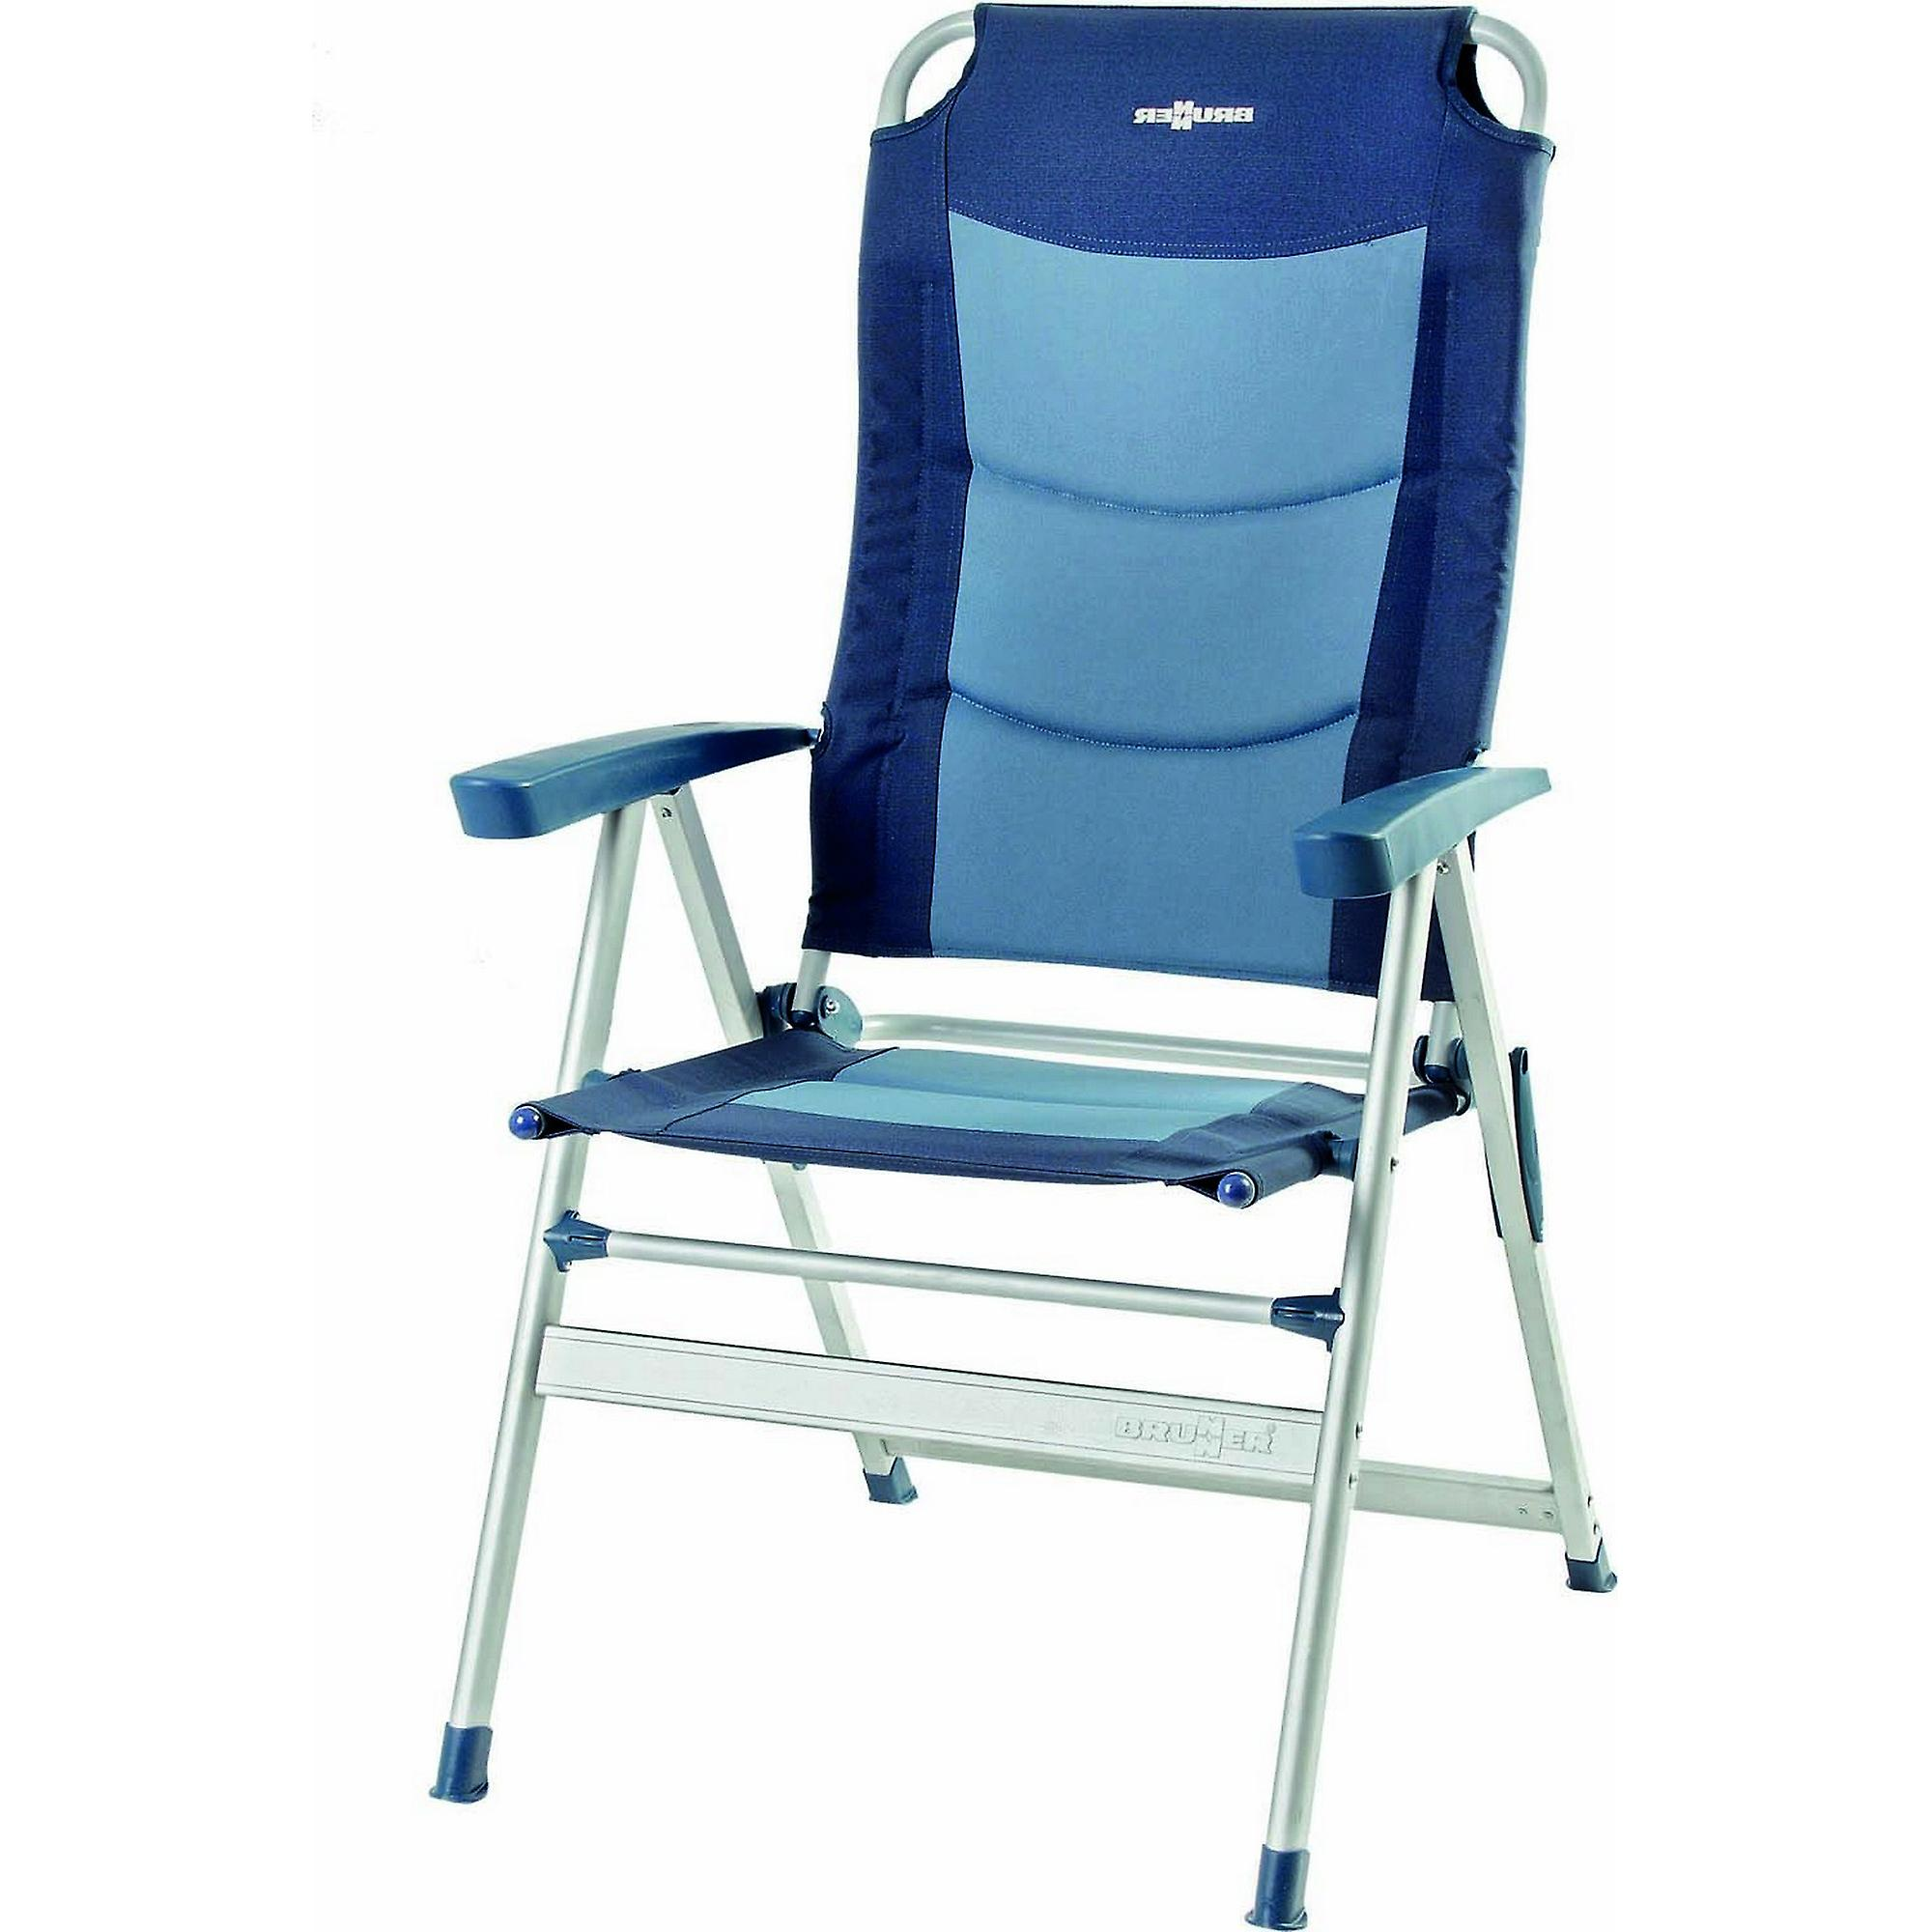 Sturdy Camping Chair Brunner Kerry Slim 600 Aluminium Recliner Camping Chair